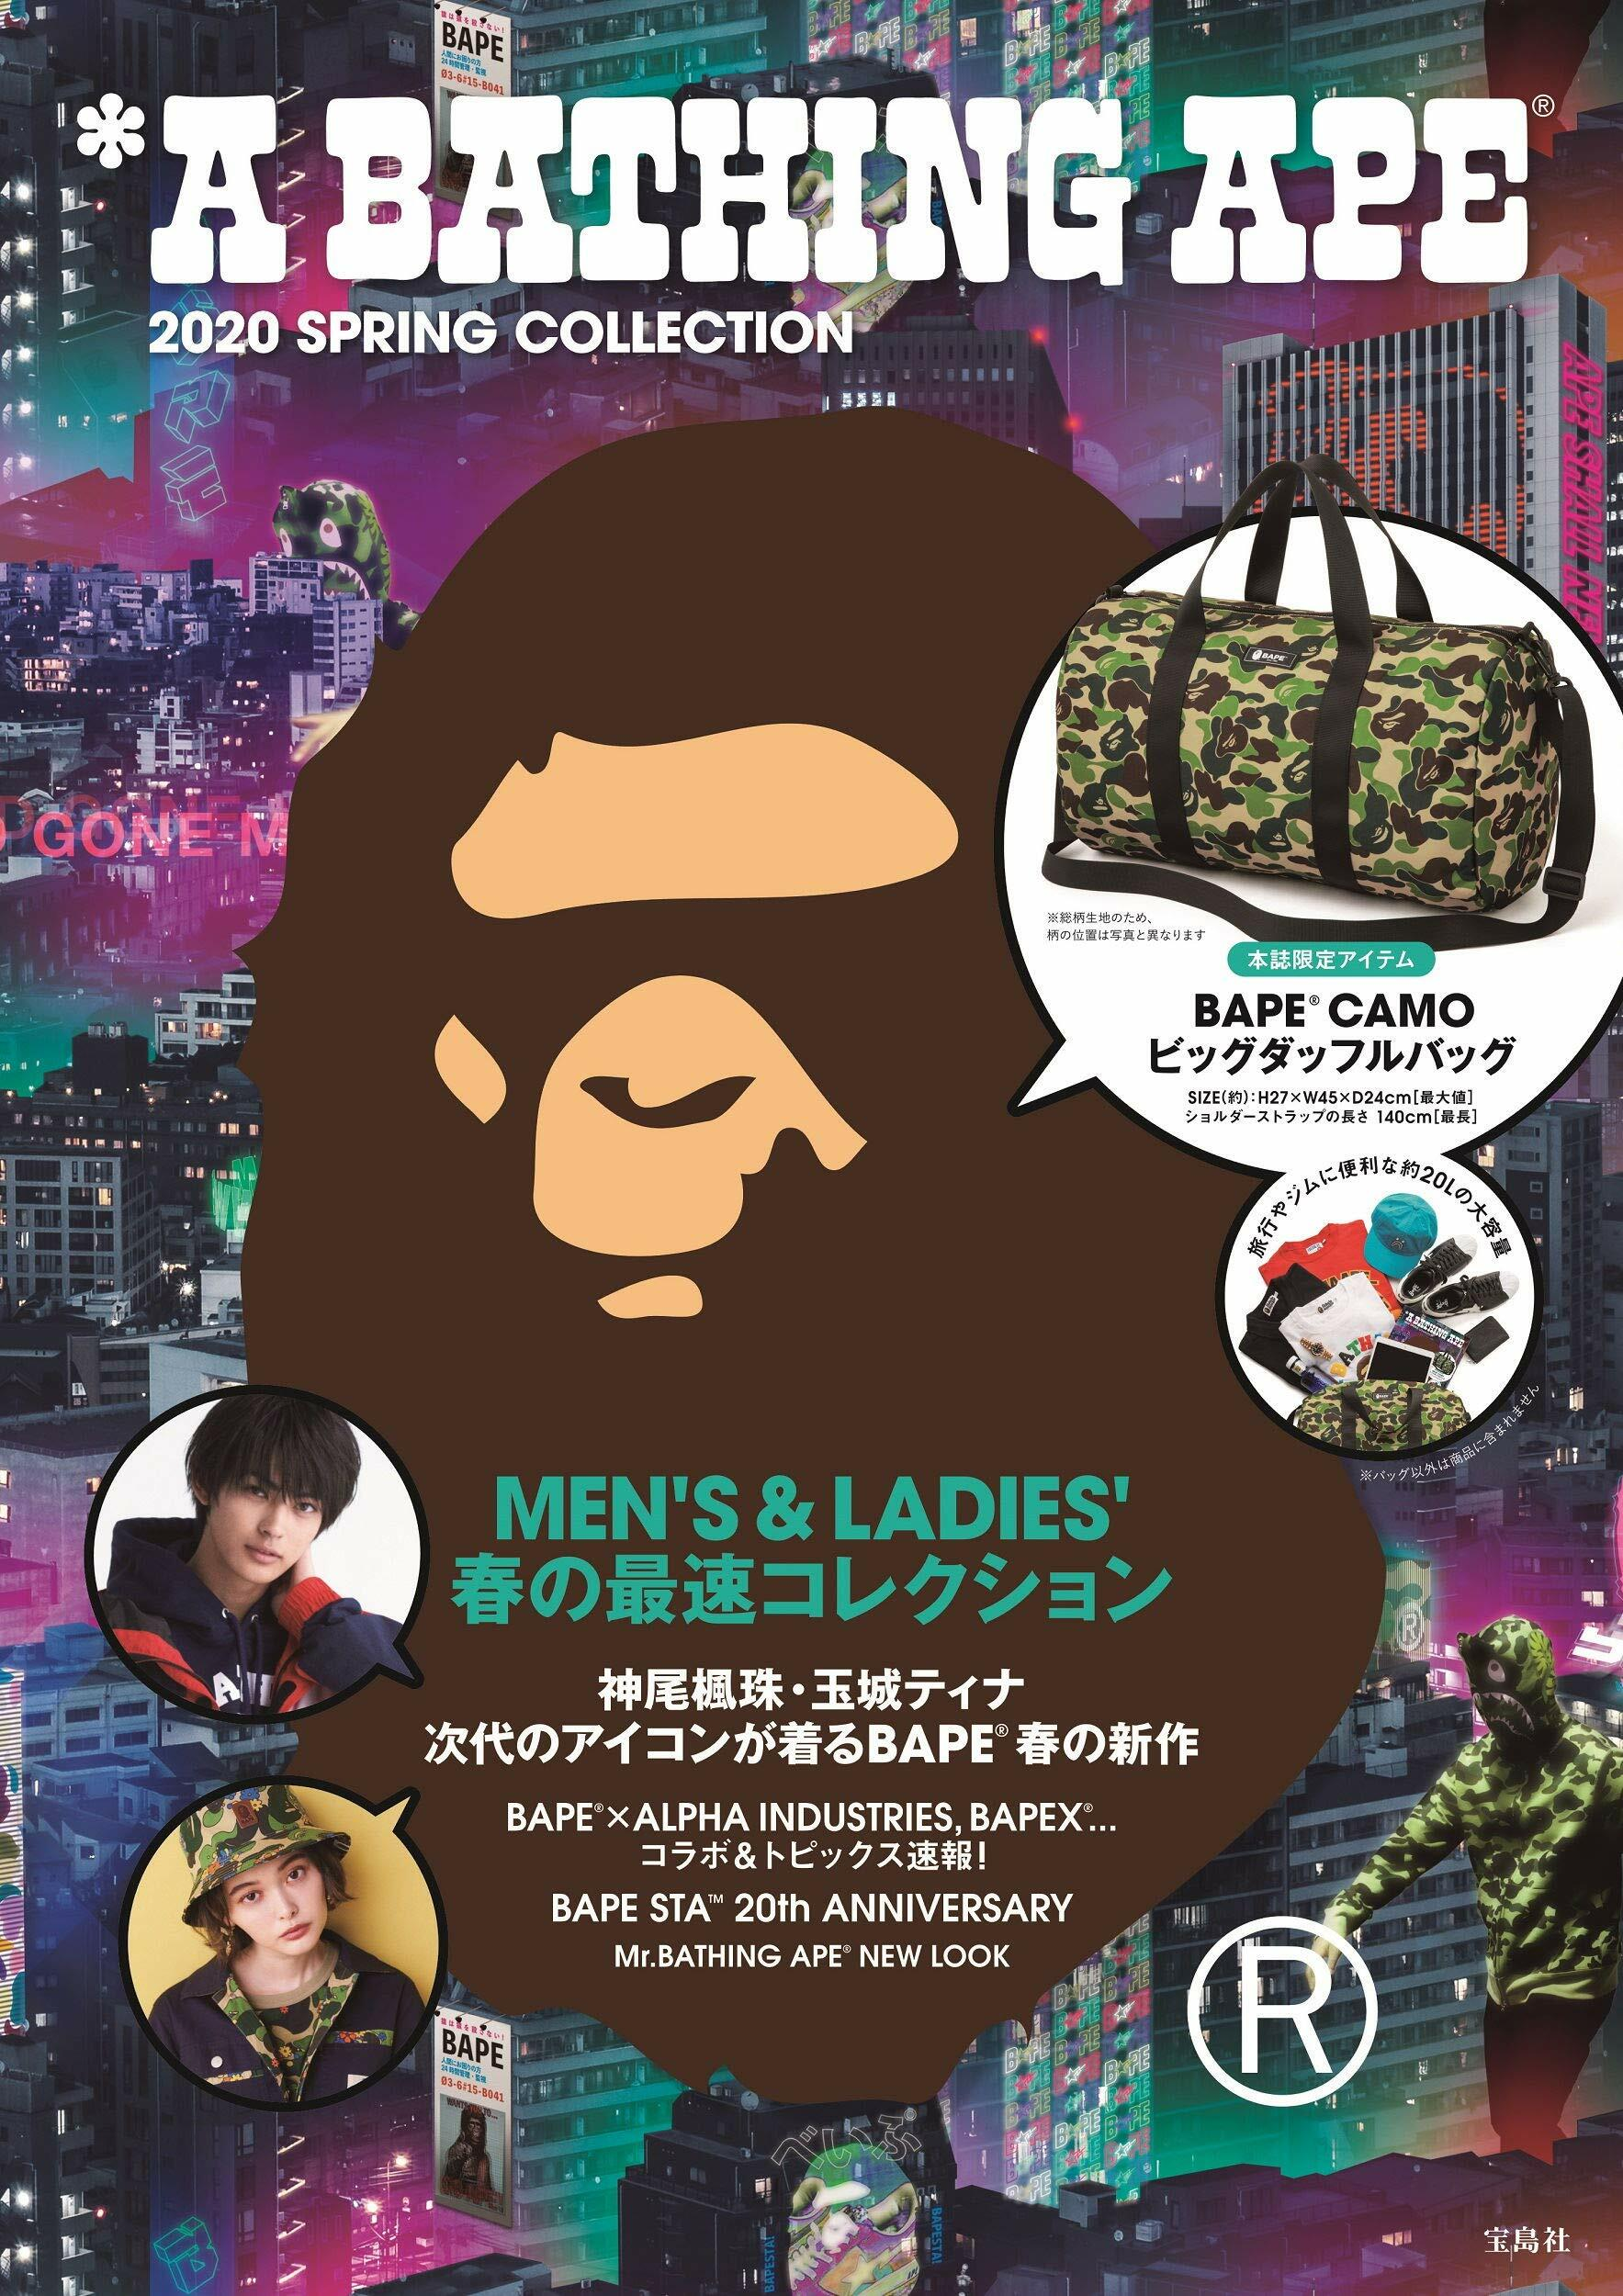 A BATHING APE® 2020 SPRING COLLECTION (e-MOOK 寶島社ブランドムック)